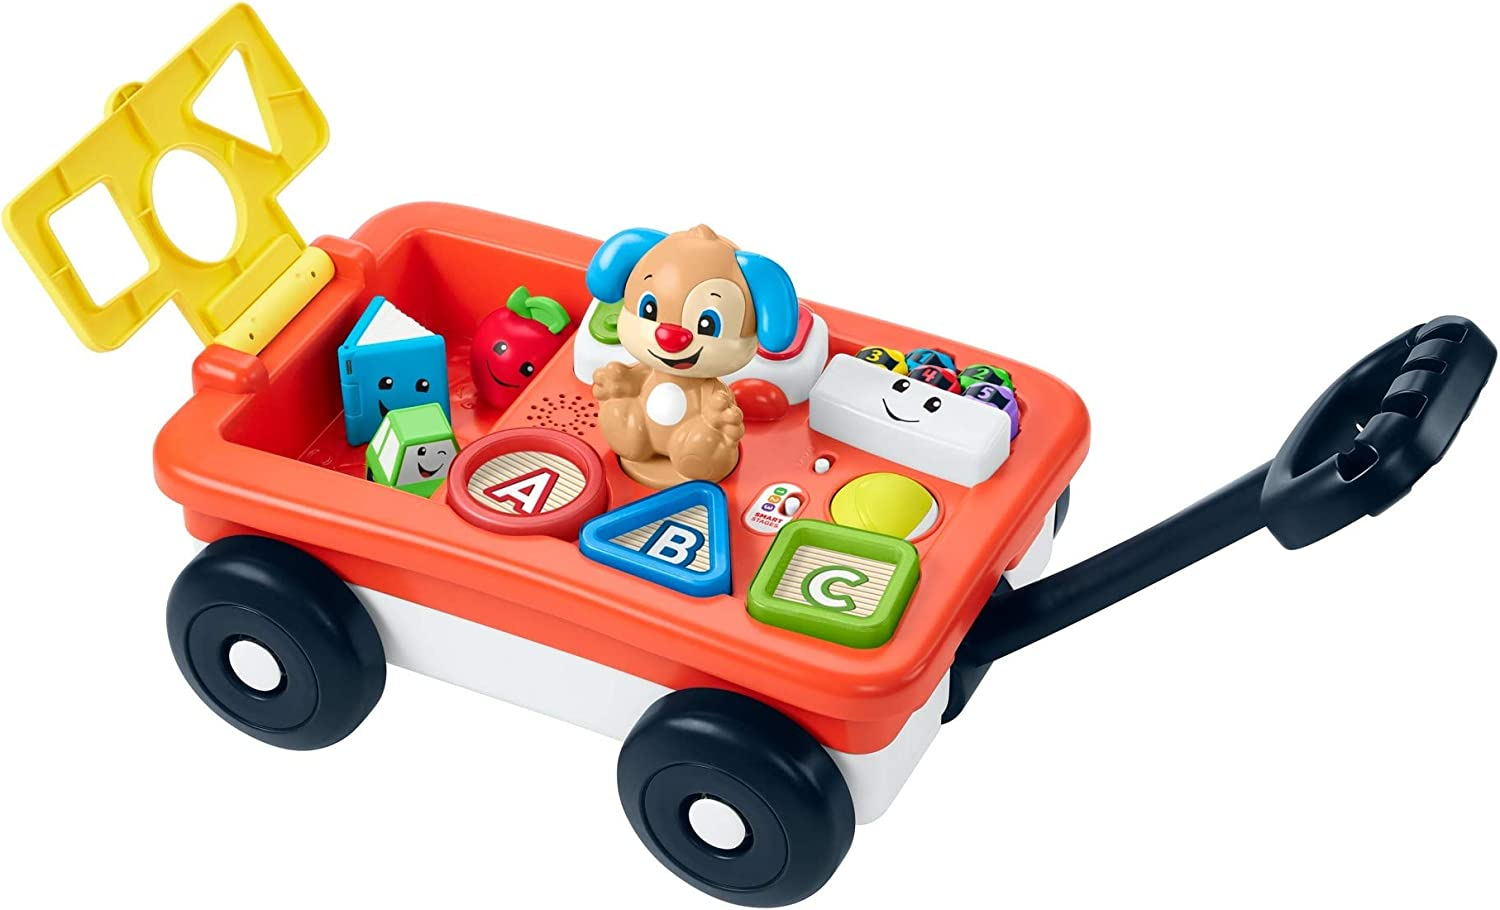 Fisher-Price Laugh Learn Pull Play Wagon Learning Manufacturer regenerated Max 52% OFF product pull-toy